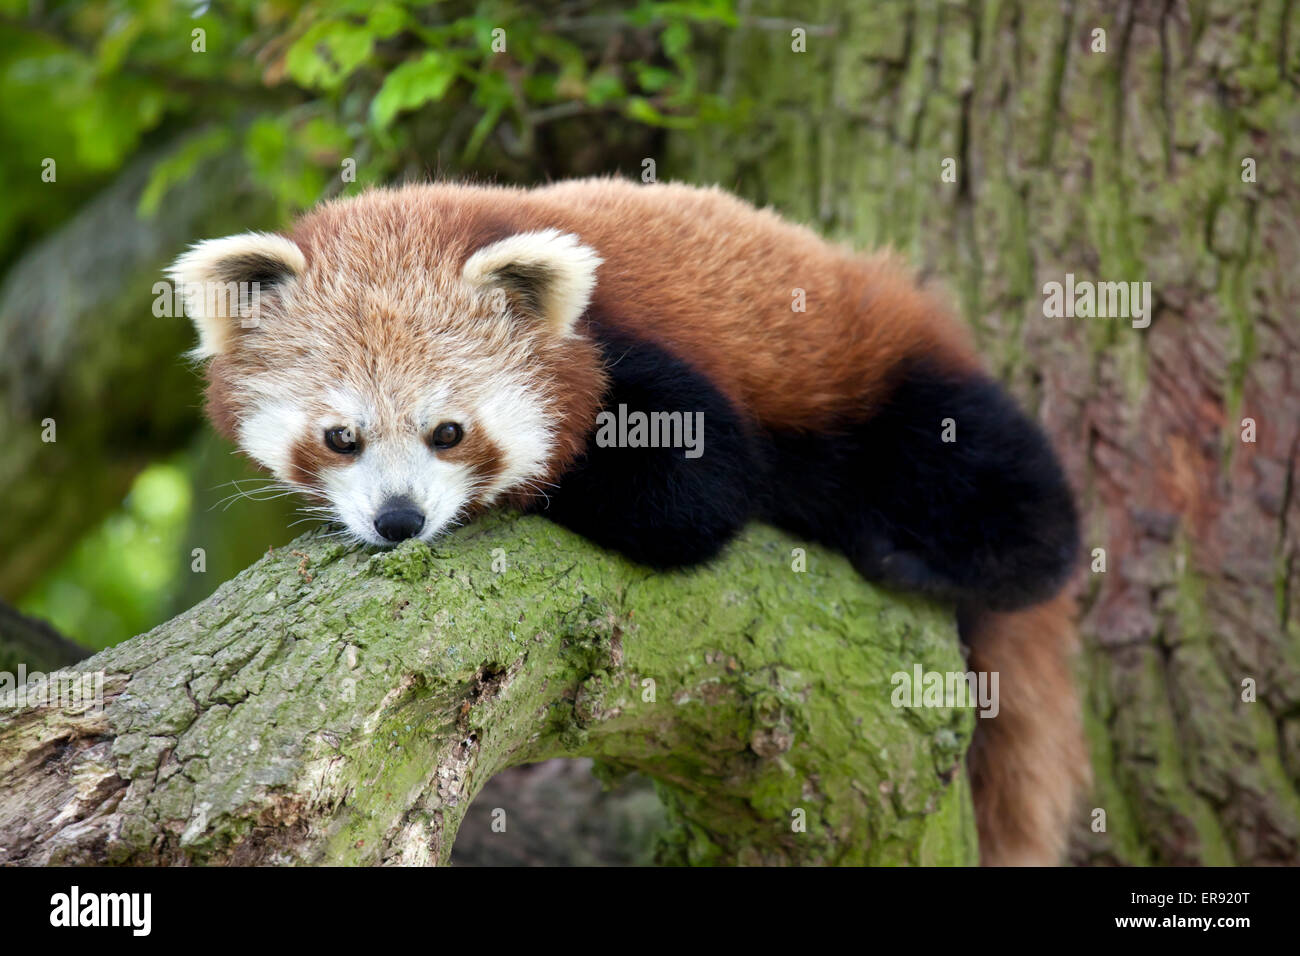 A Red Panda sitting on a tree branch Stock Photo